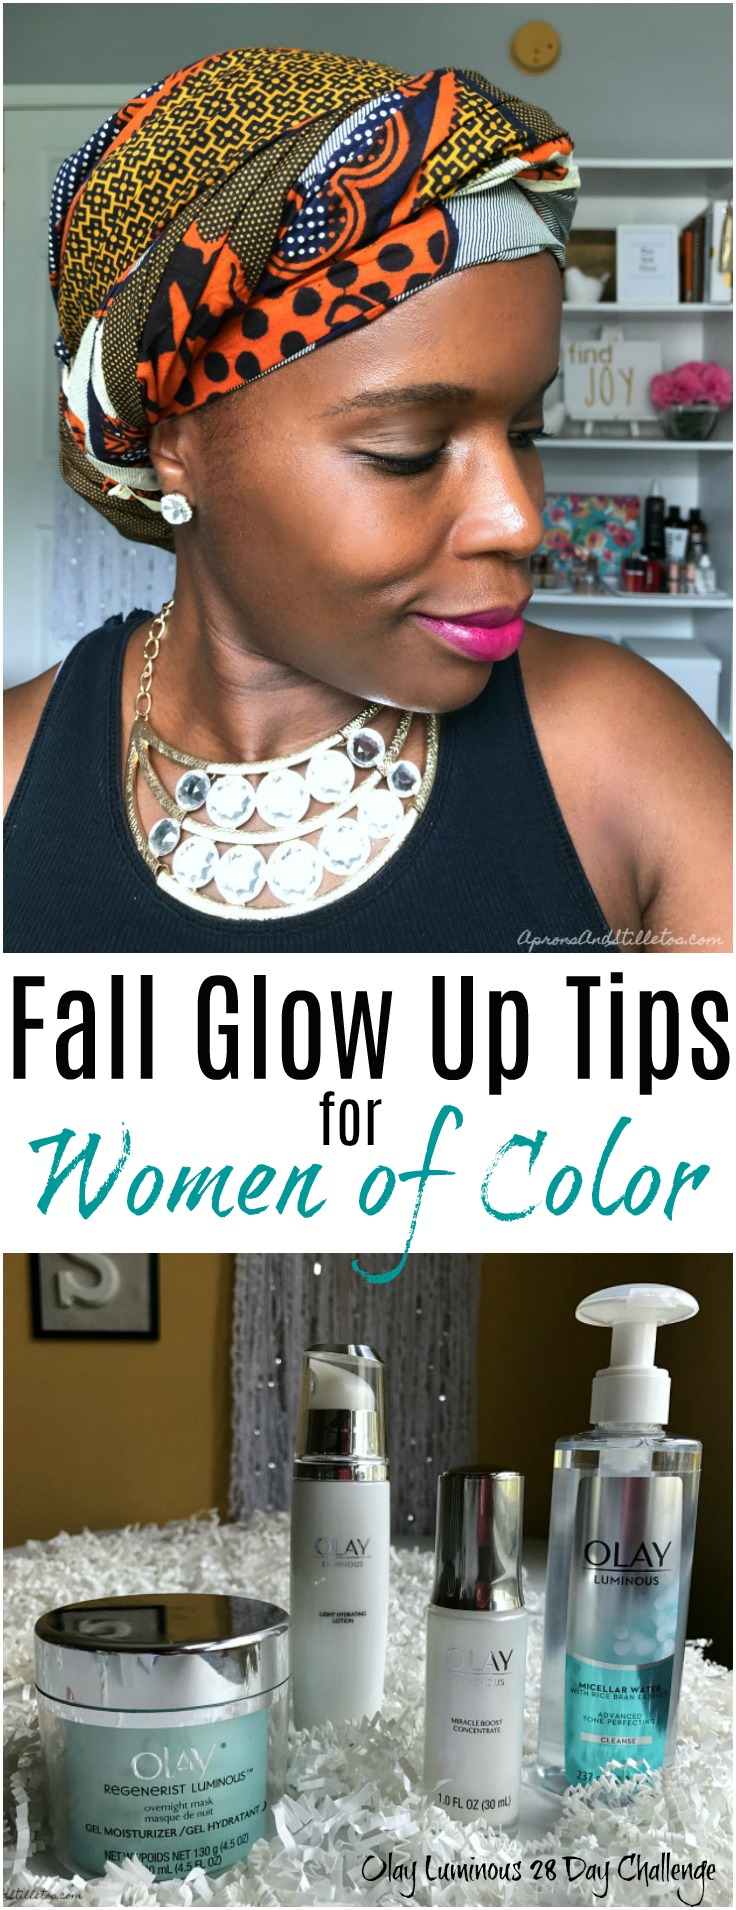 Fall Glow Up Tips for Women of Color